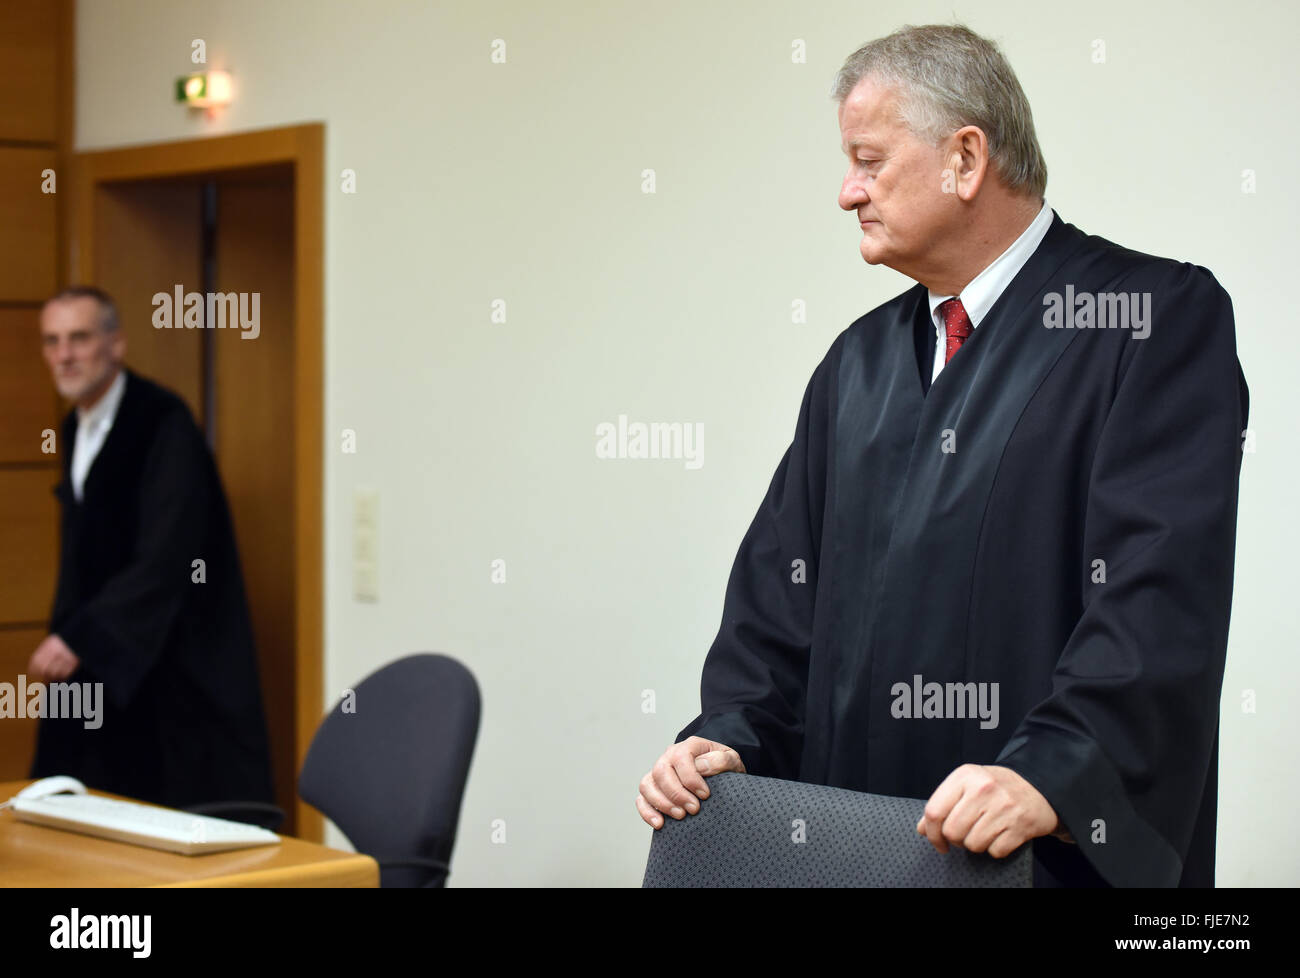 Bochum, Germany. 02nd Mar, 2016. Judge Ingo Streek (L) and lawyer Dietrich Messler stand at the start of trial in - Stock Image